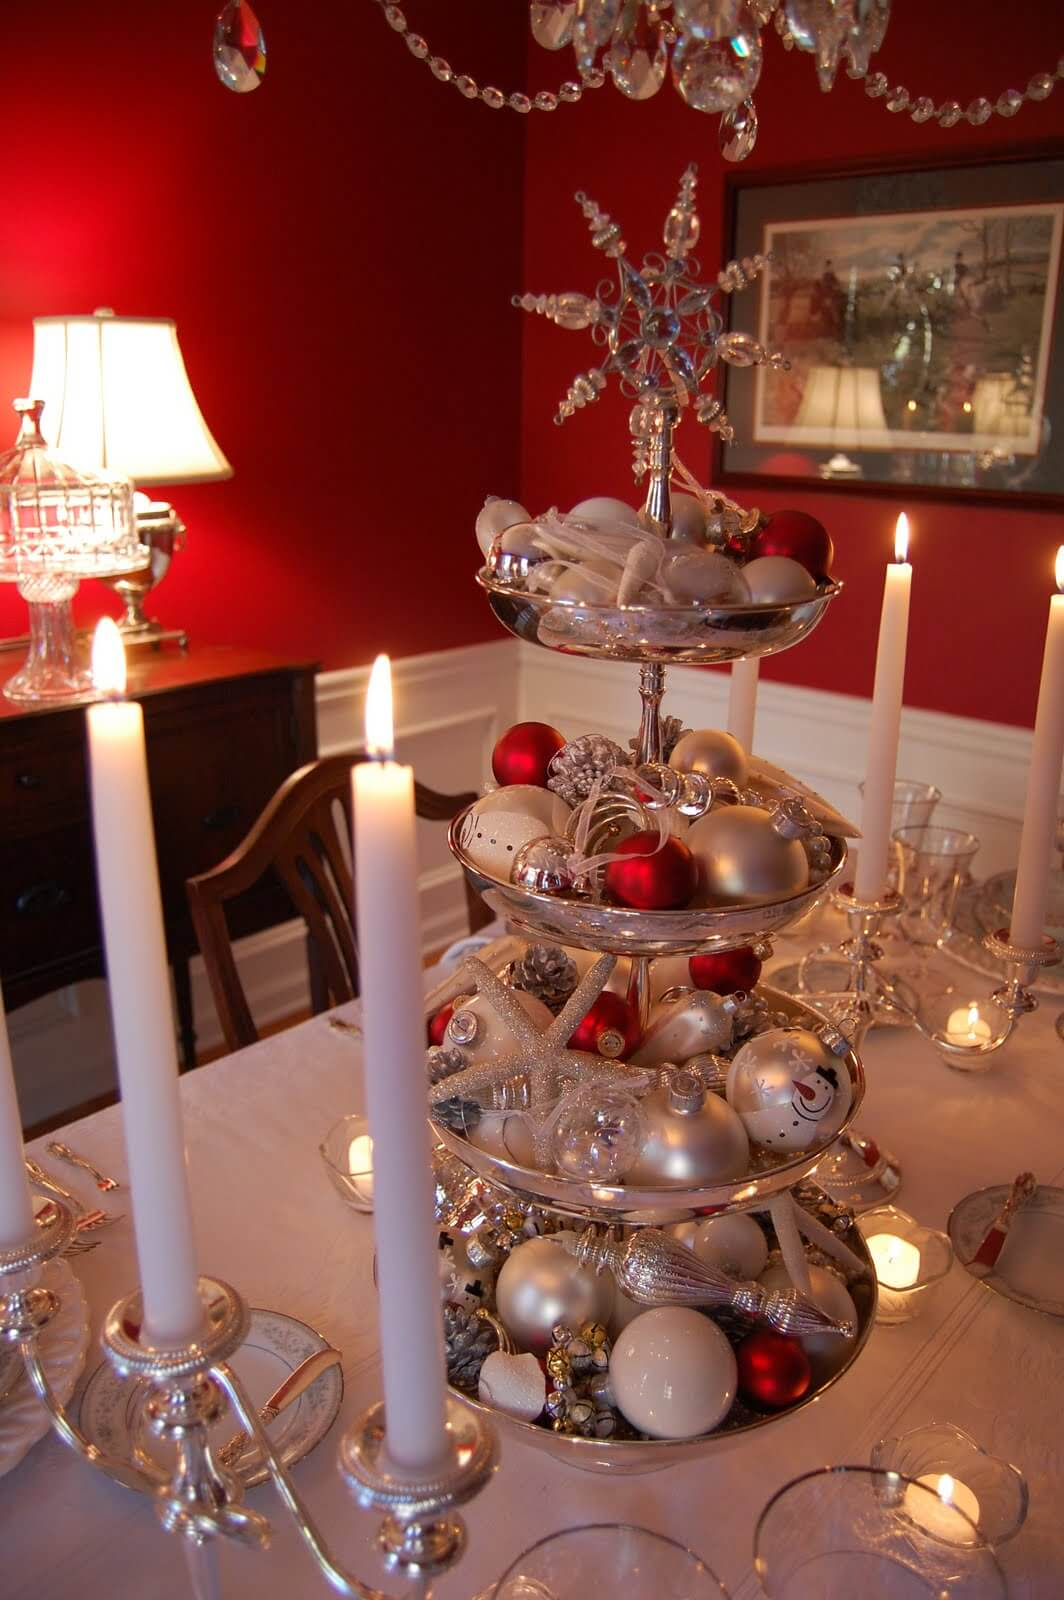 Towering Silver Centerpiece Display With Red Accent Ornaments